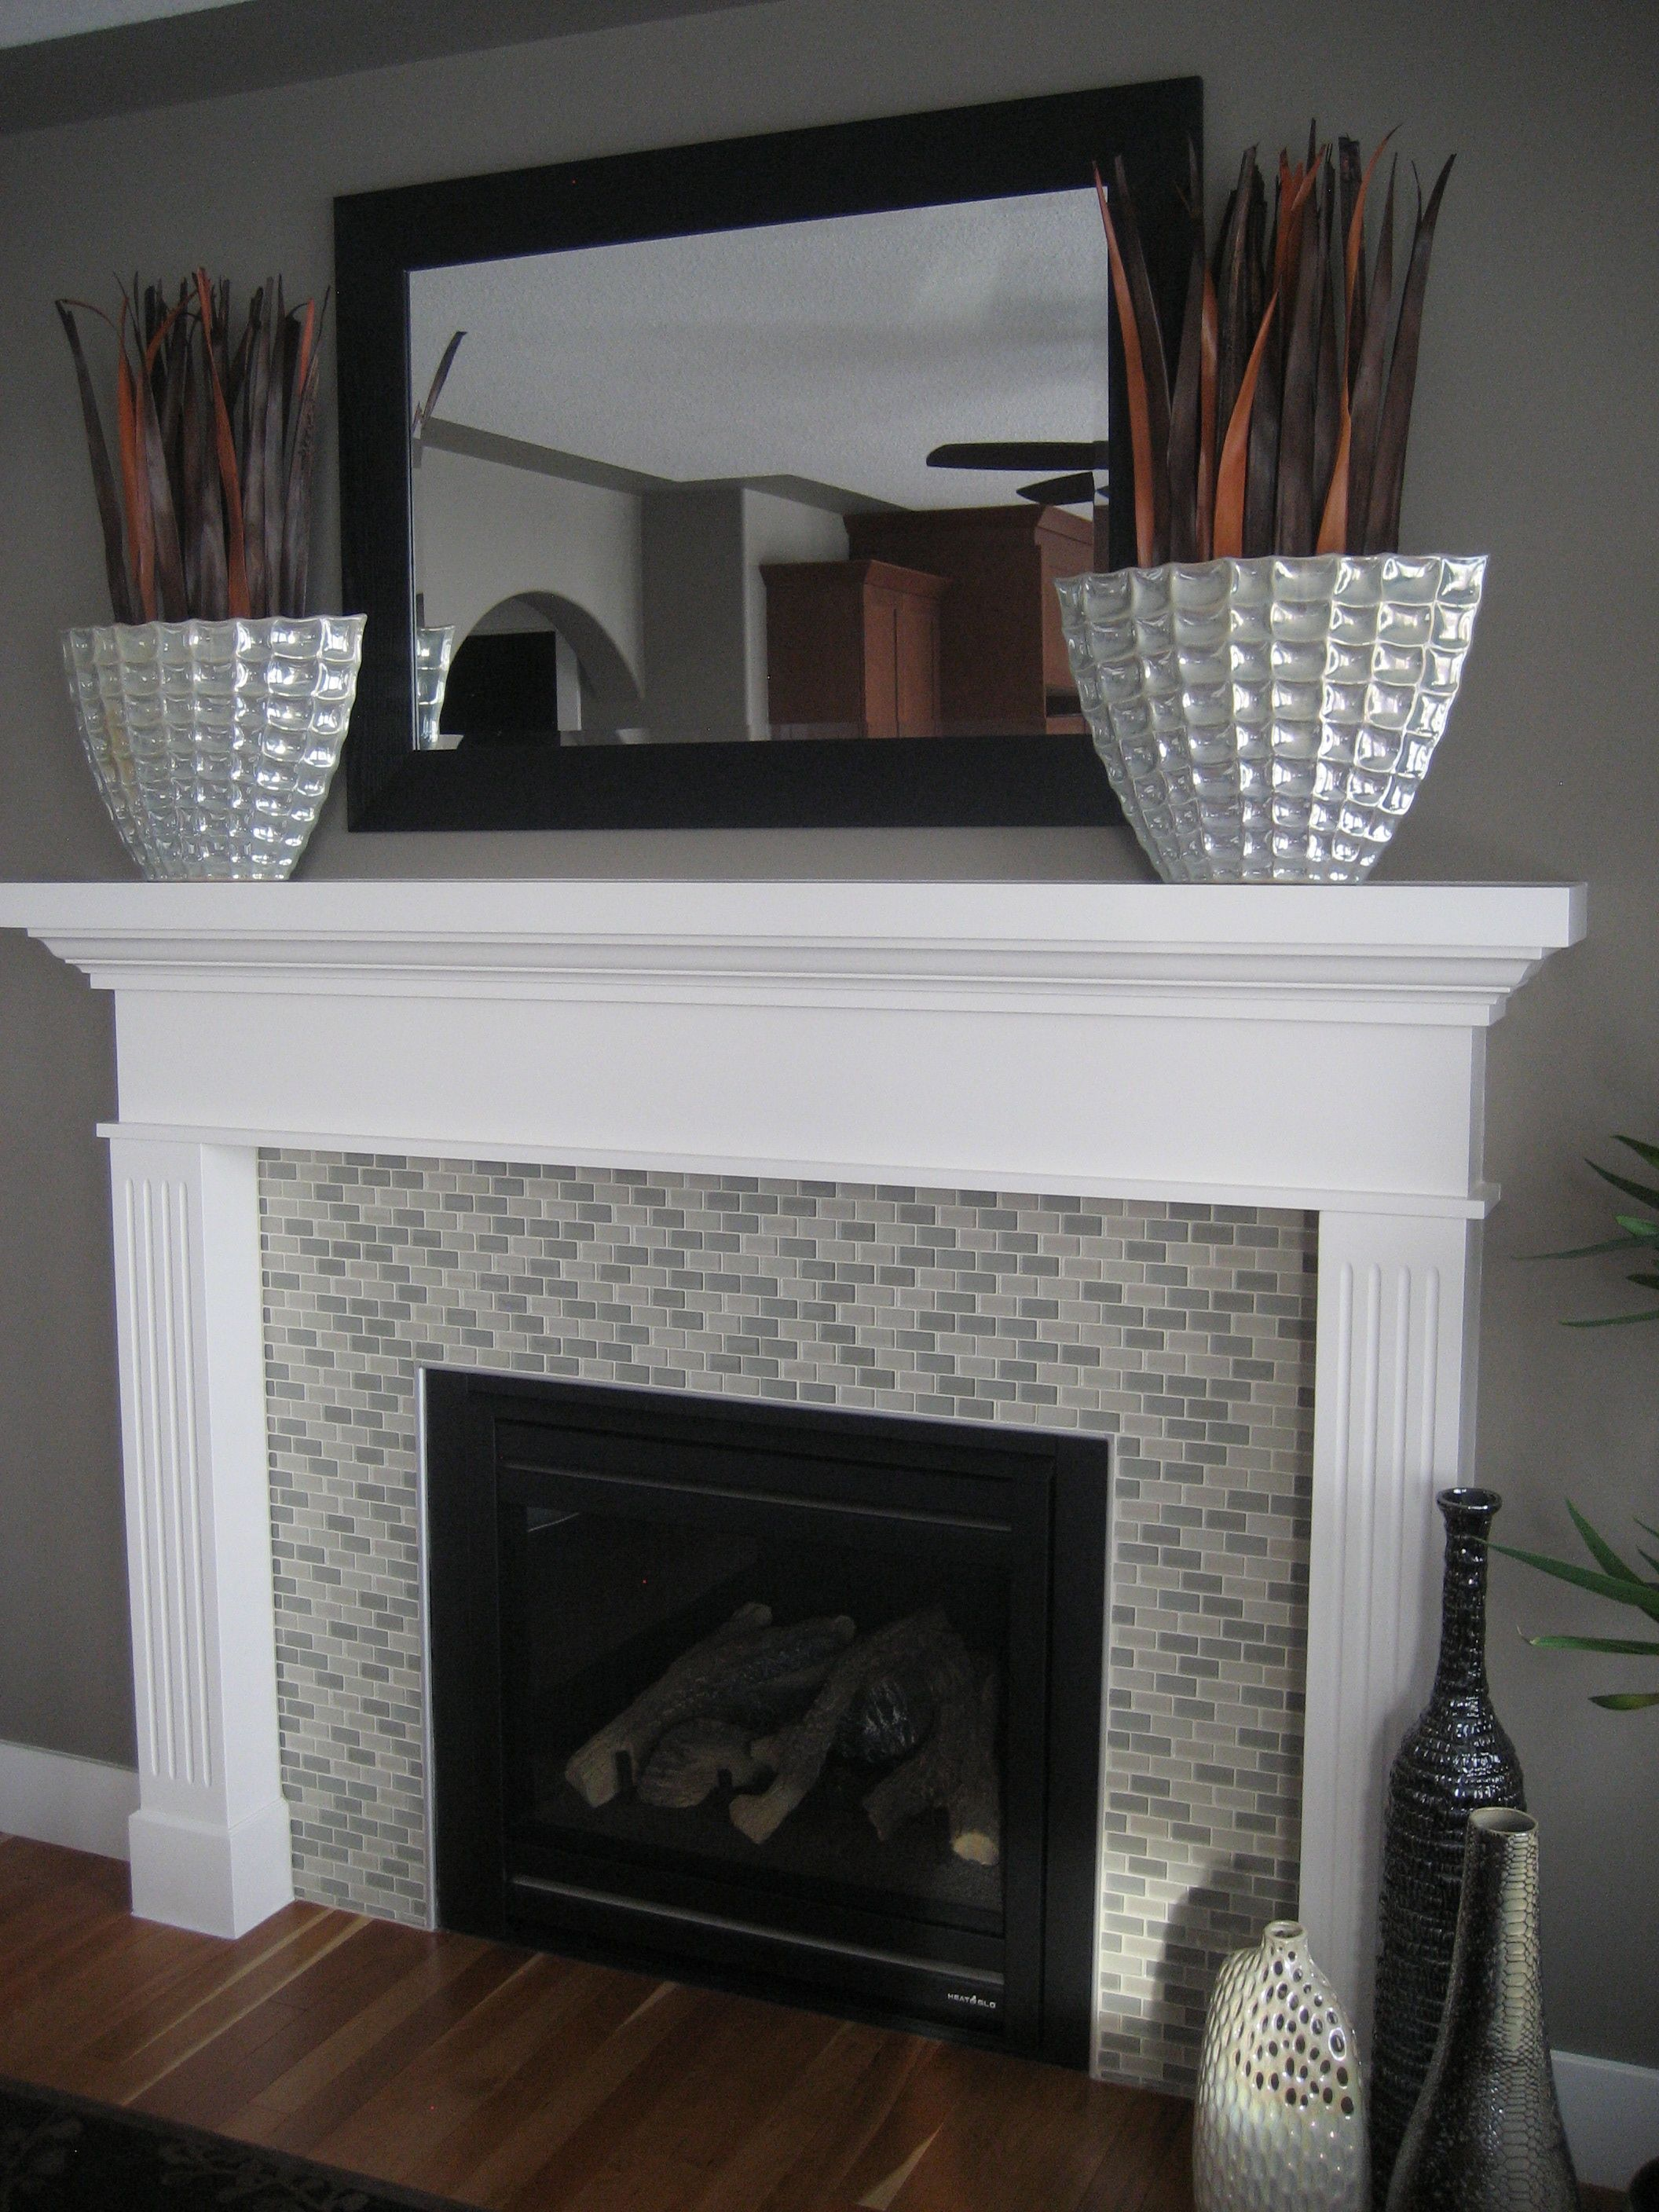 Diy Fireplace Decorations I Purchased Two Large Vases At Home